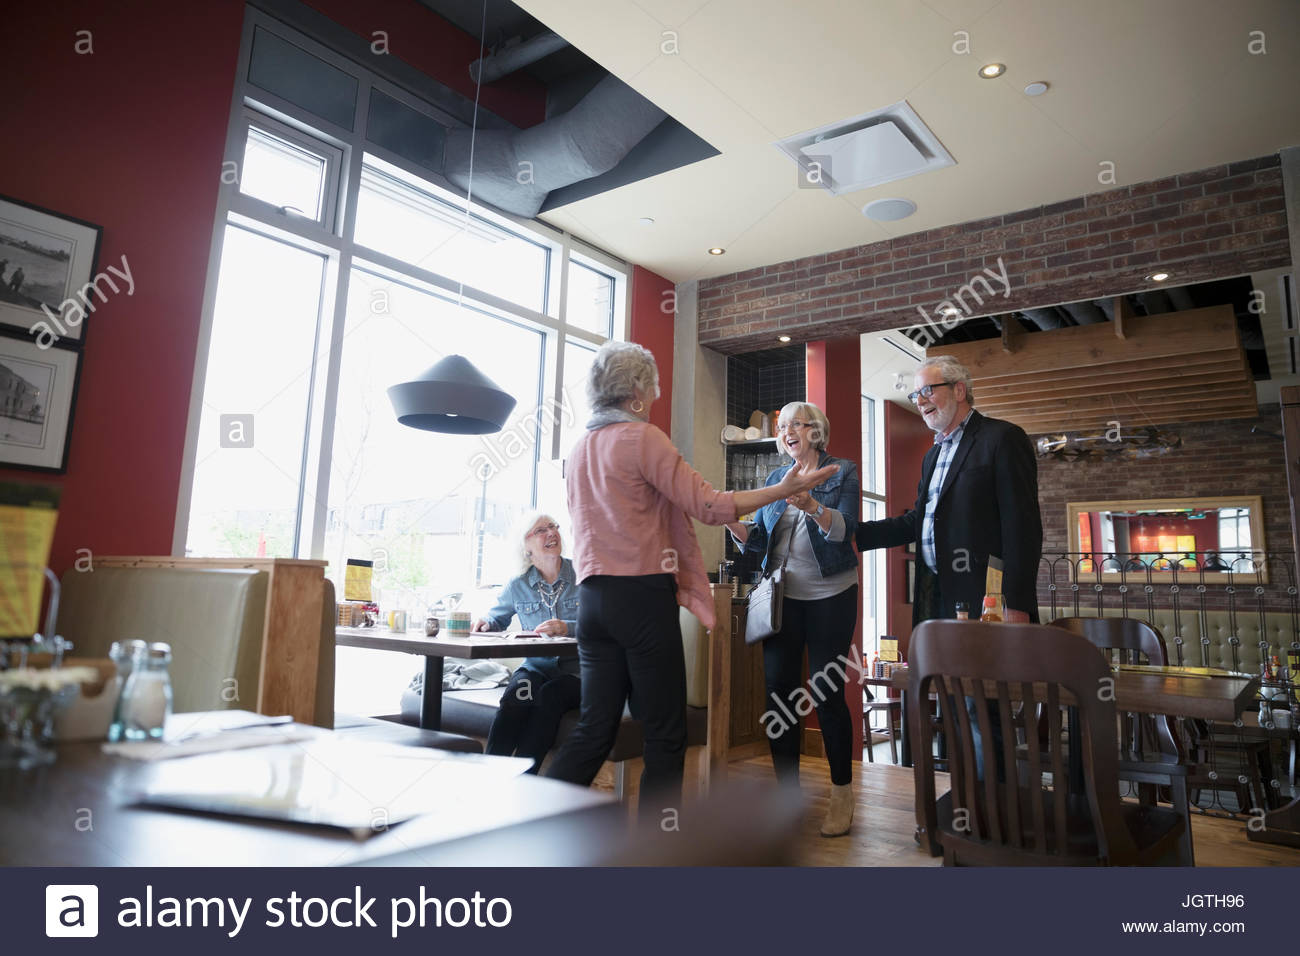 Enthusiastic senior woman greeting friends at diner booth - Stock Image